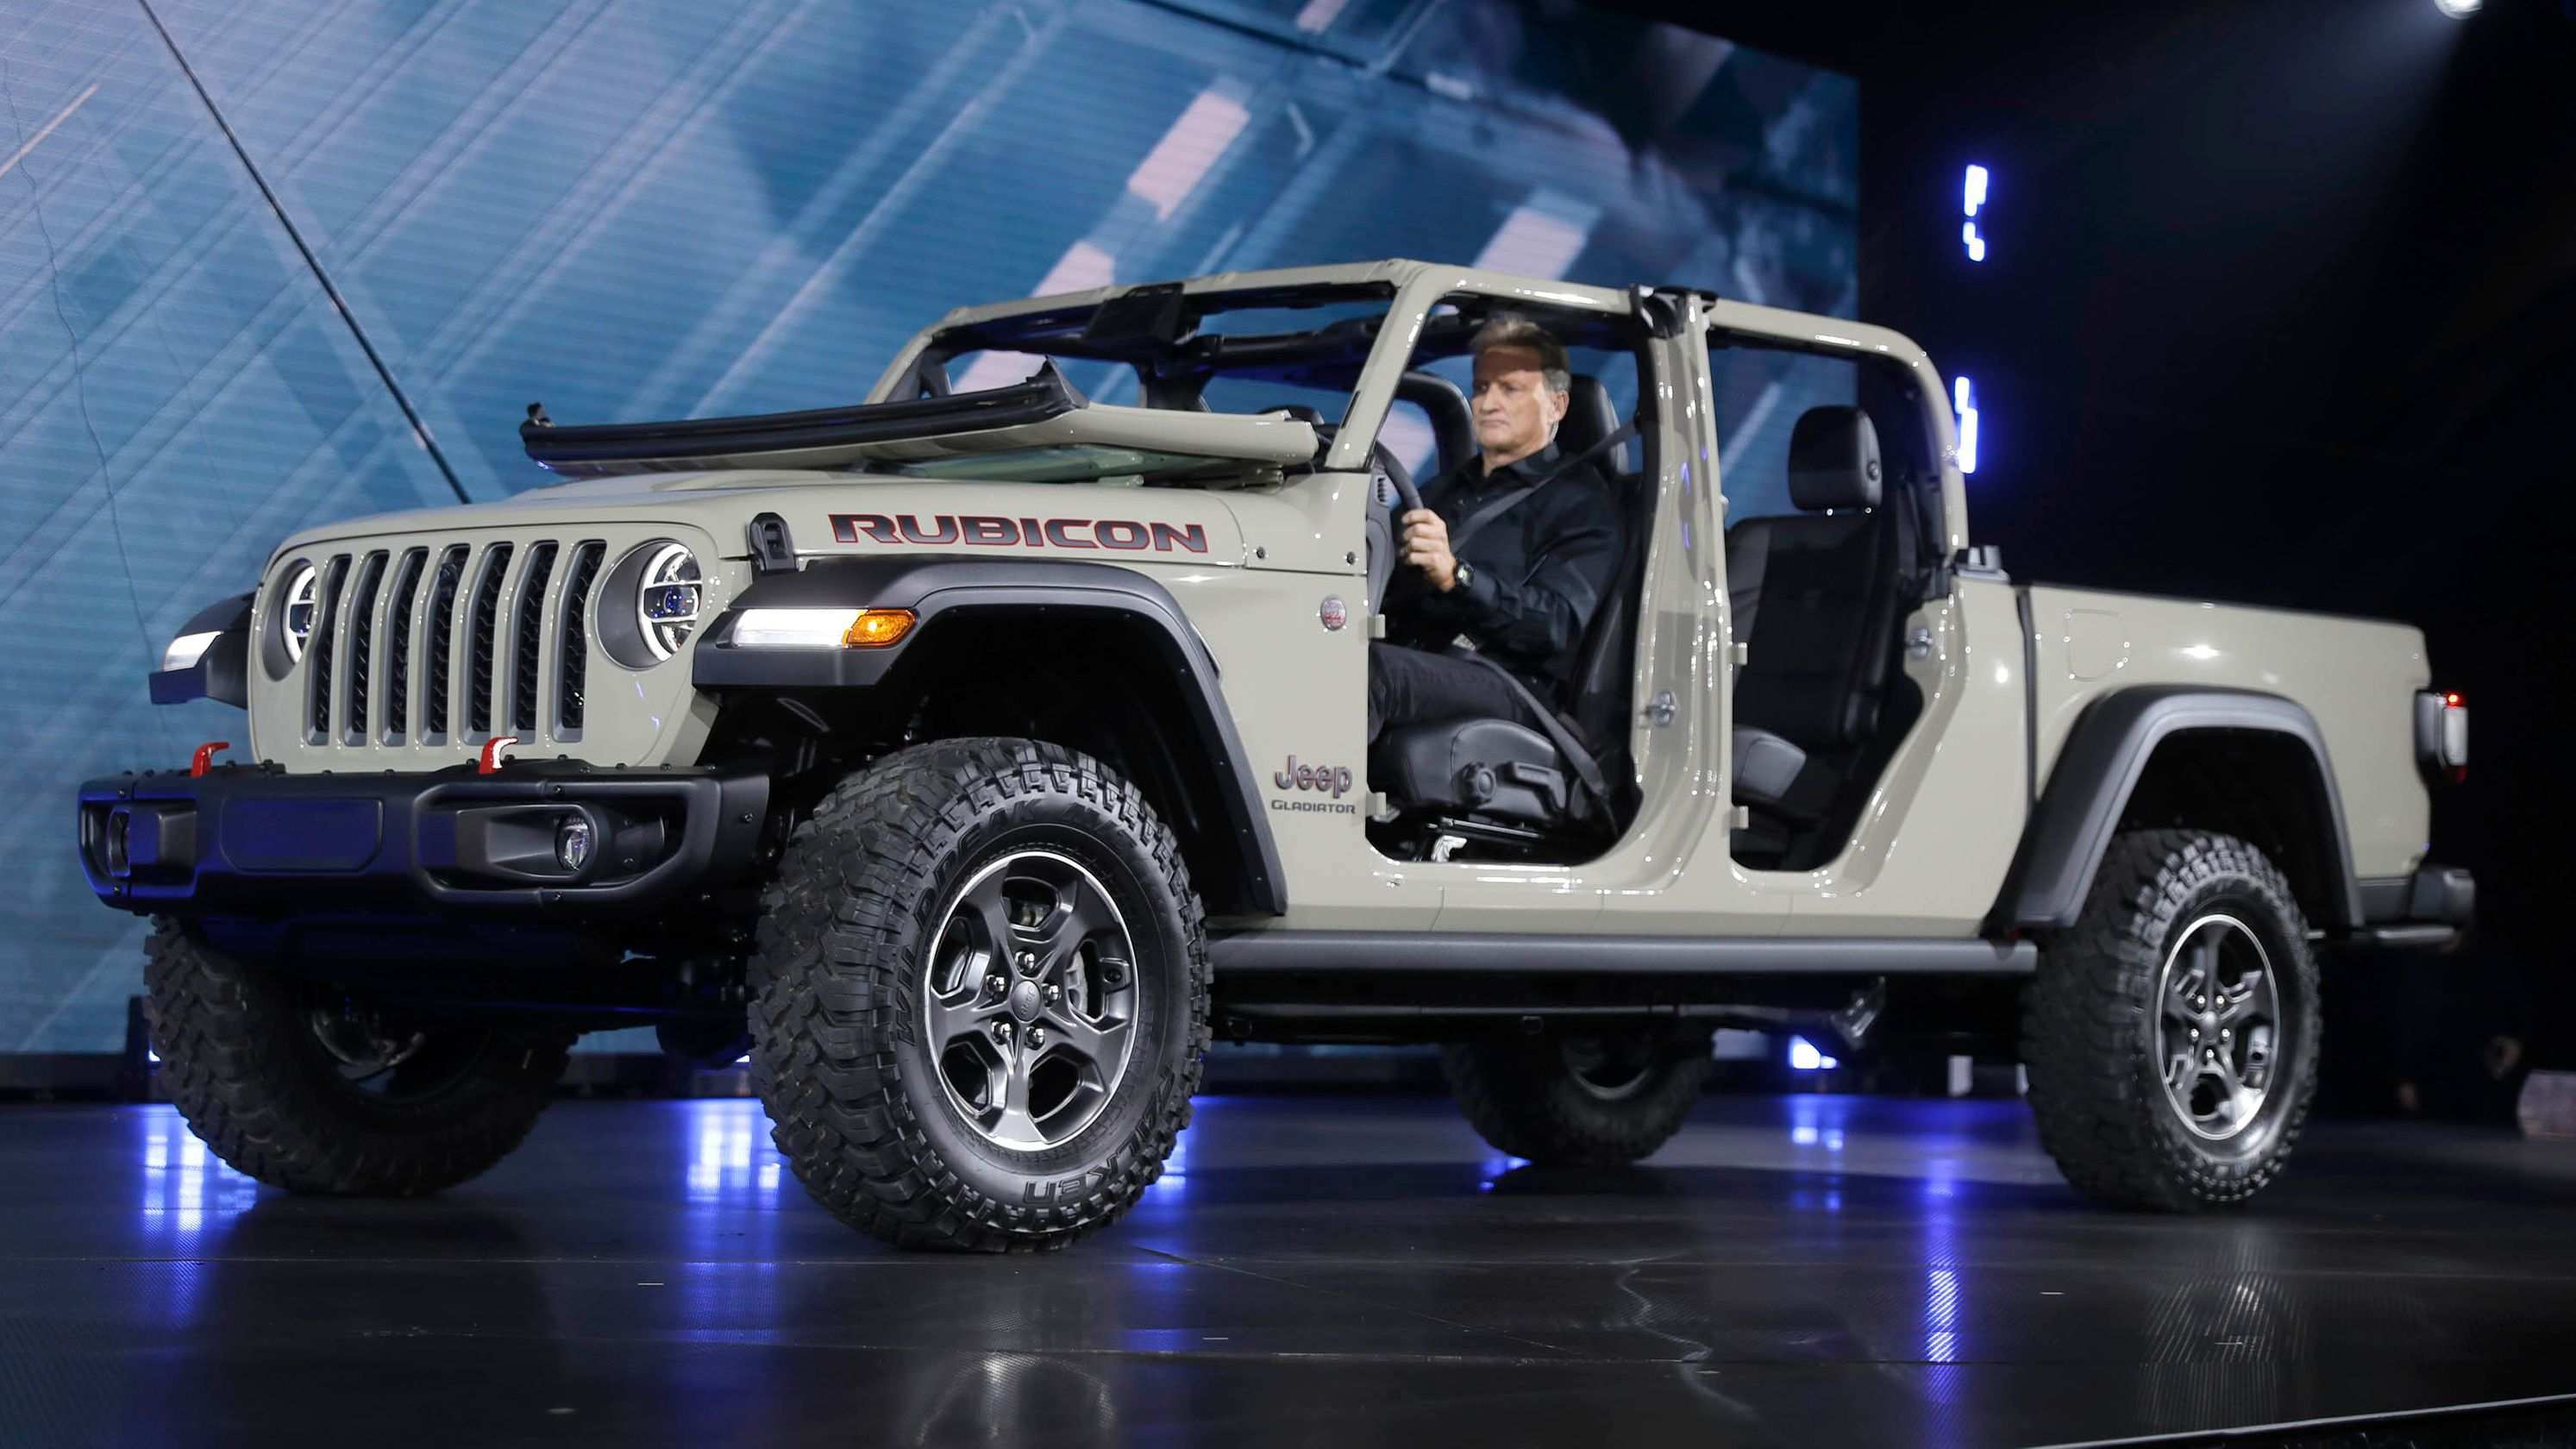 66 All New 2019 Jeep Gladiator Specs and Review with 2019 Jeep Gladiator